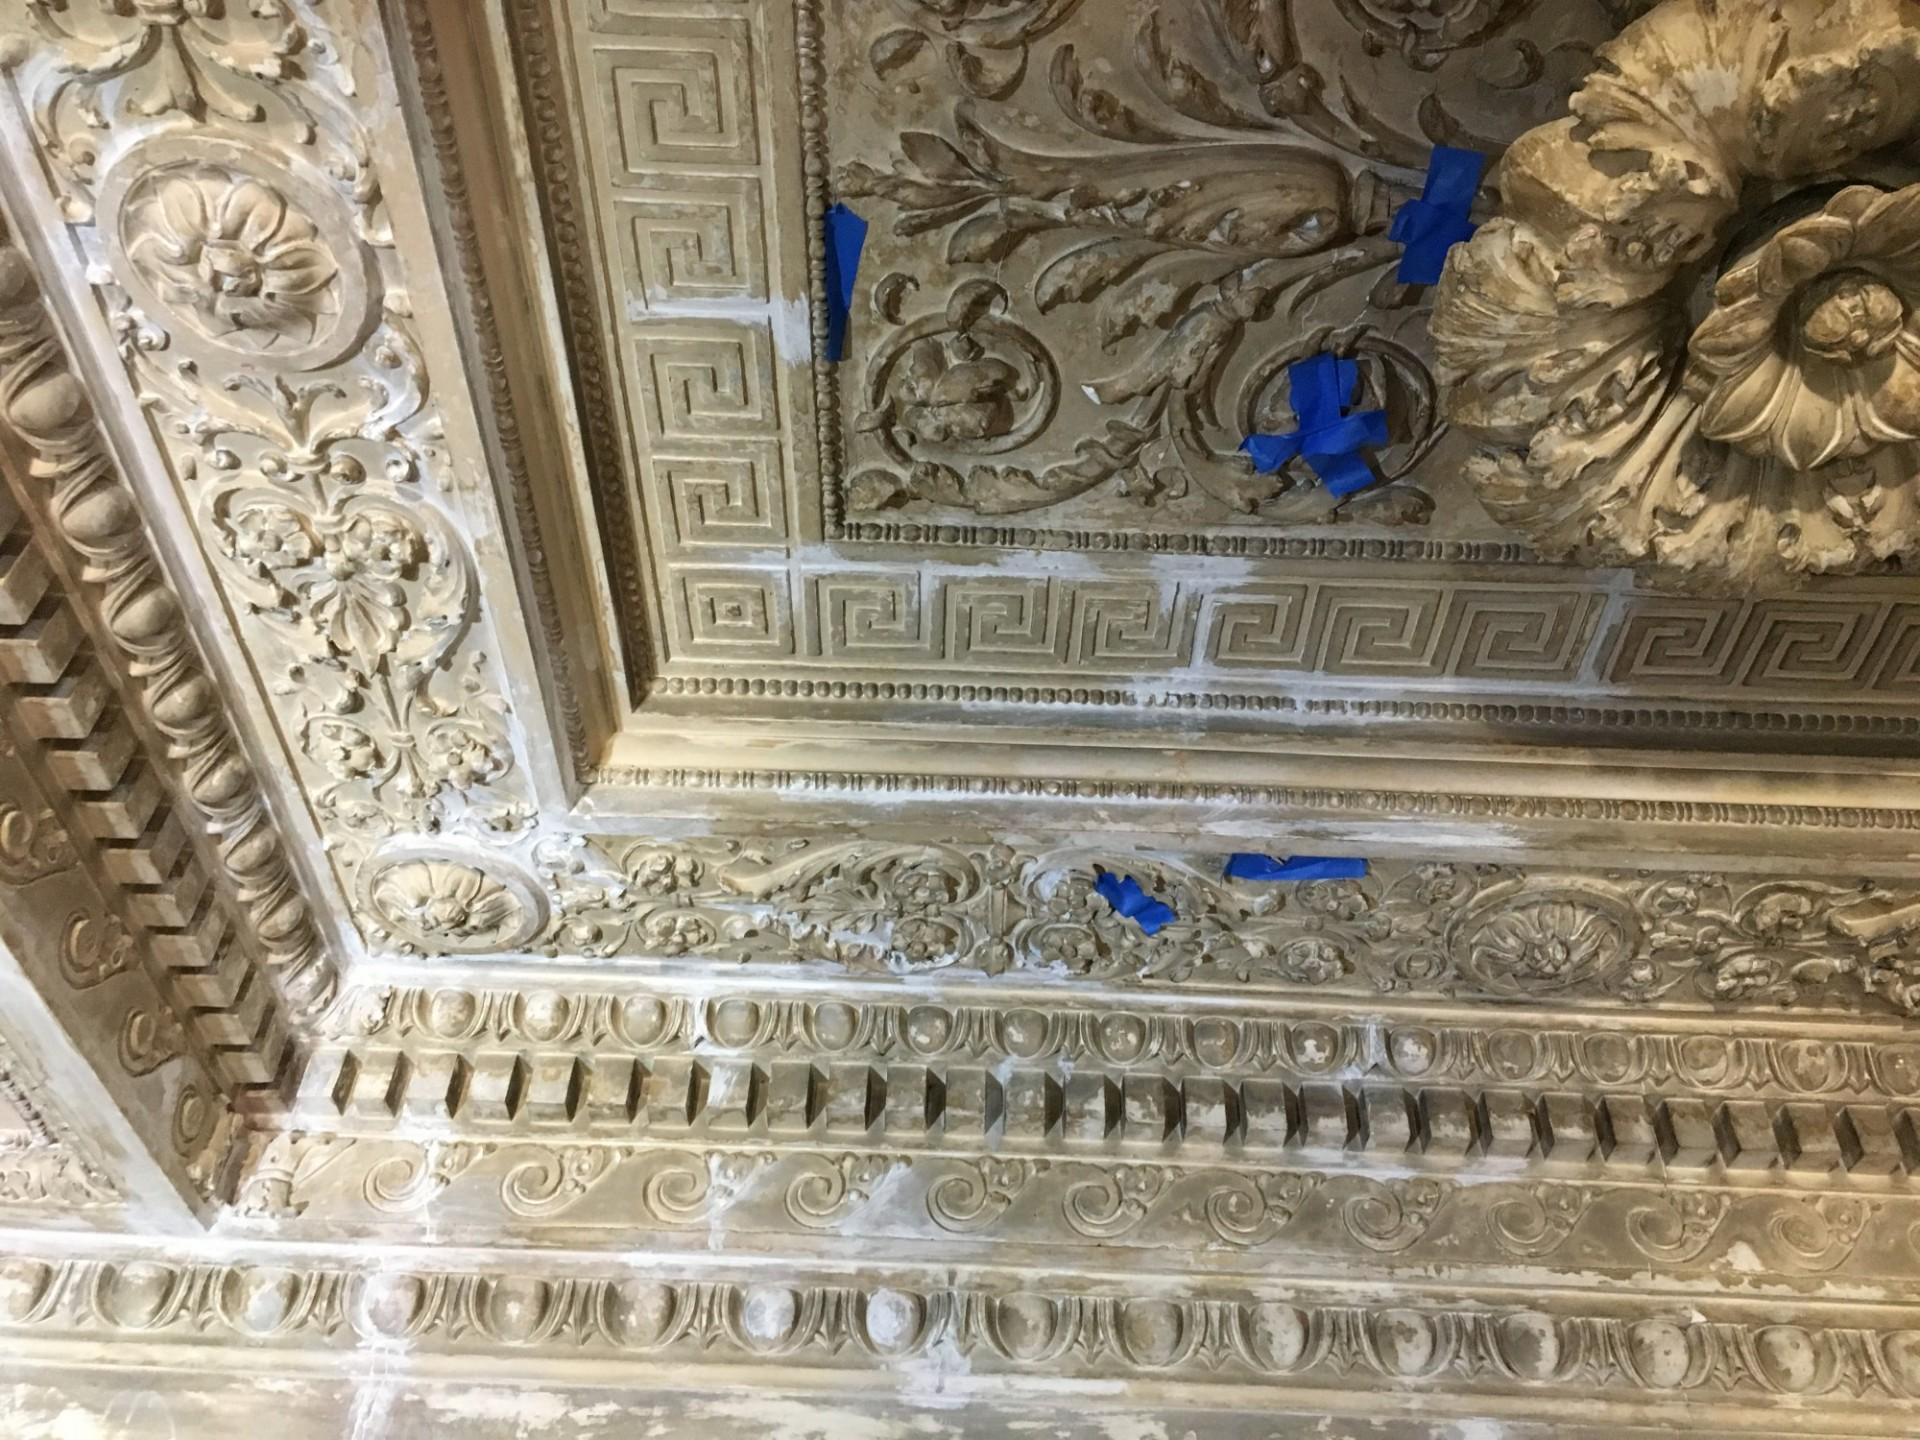 Repairs in progress of the ornate plaster ceiling. The repairs require close attention to detail and careful work to maintain the integrity of the historic ceiling.